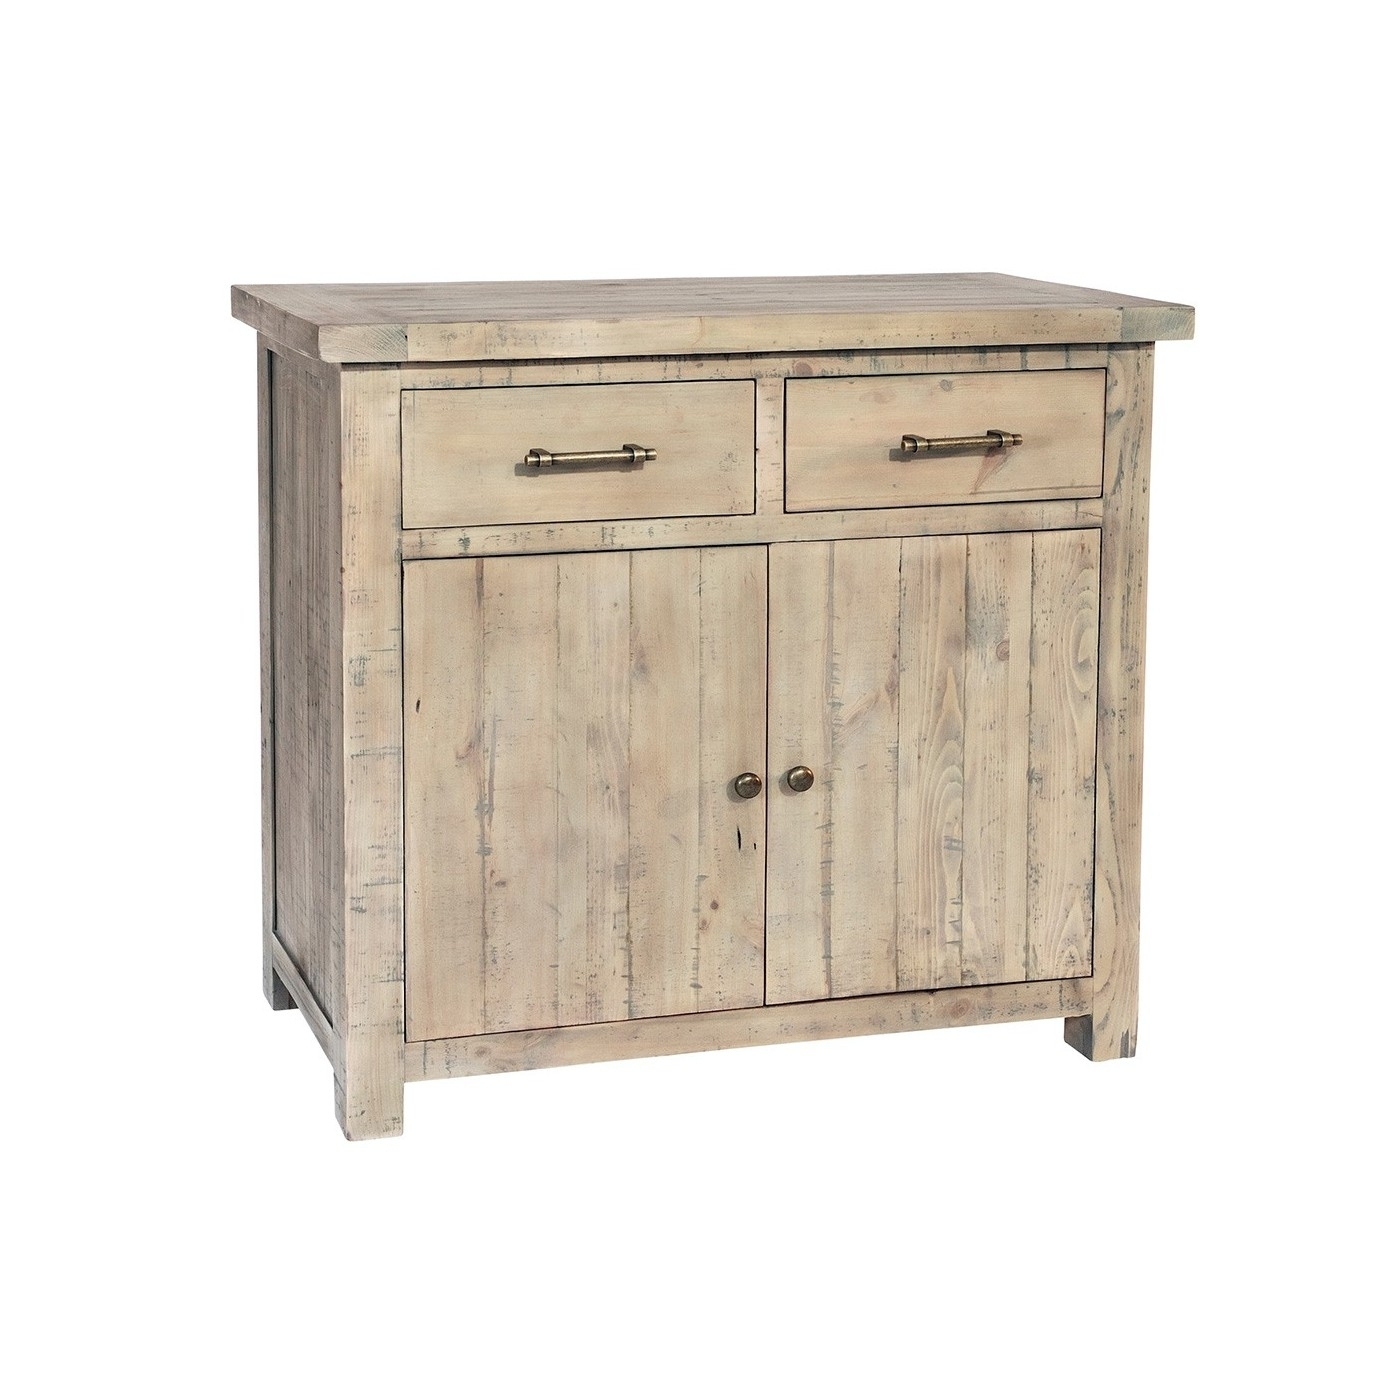 Reclaimed Driftwood Compact 2 Drawer Sideboard | Millbrook For Latest 2 Drawer Sideboards (#12 of 20)